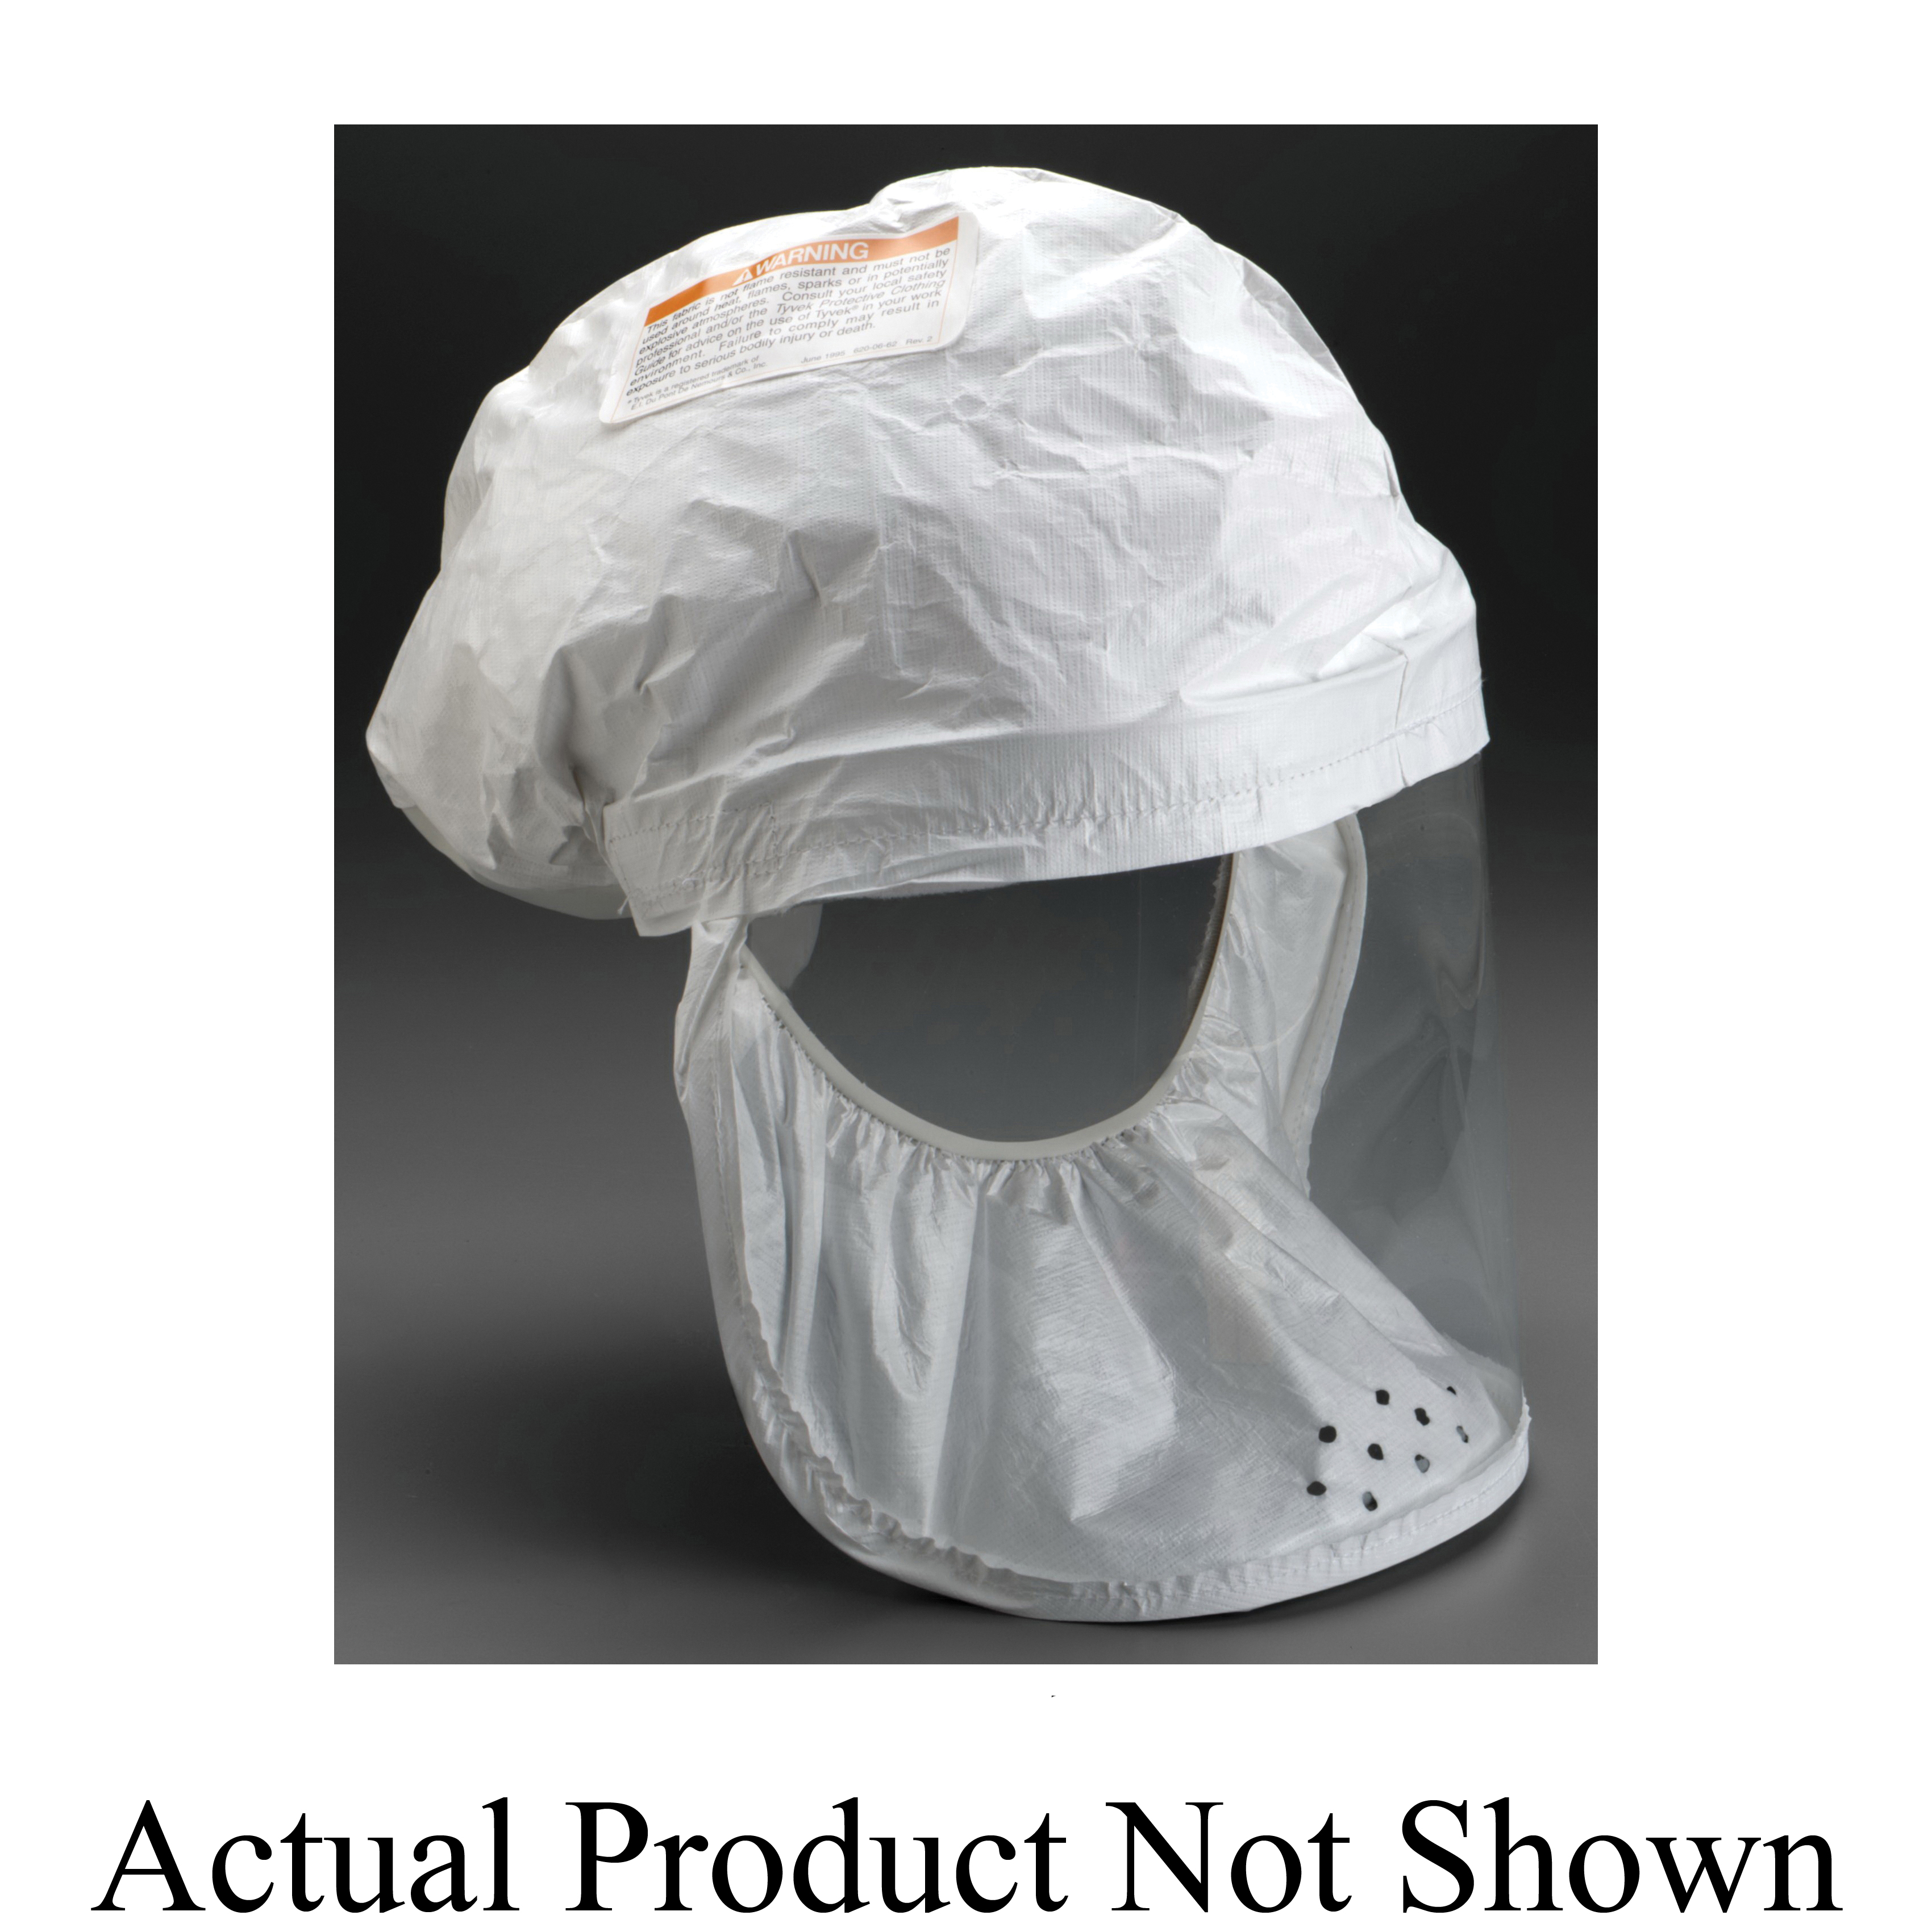 3M™ 051138-72432 Head Cover, For Use With Air-Mate™ and Breathe Easy™ PAPR Systems